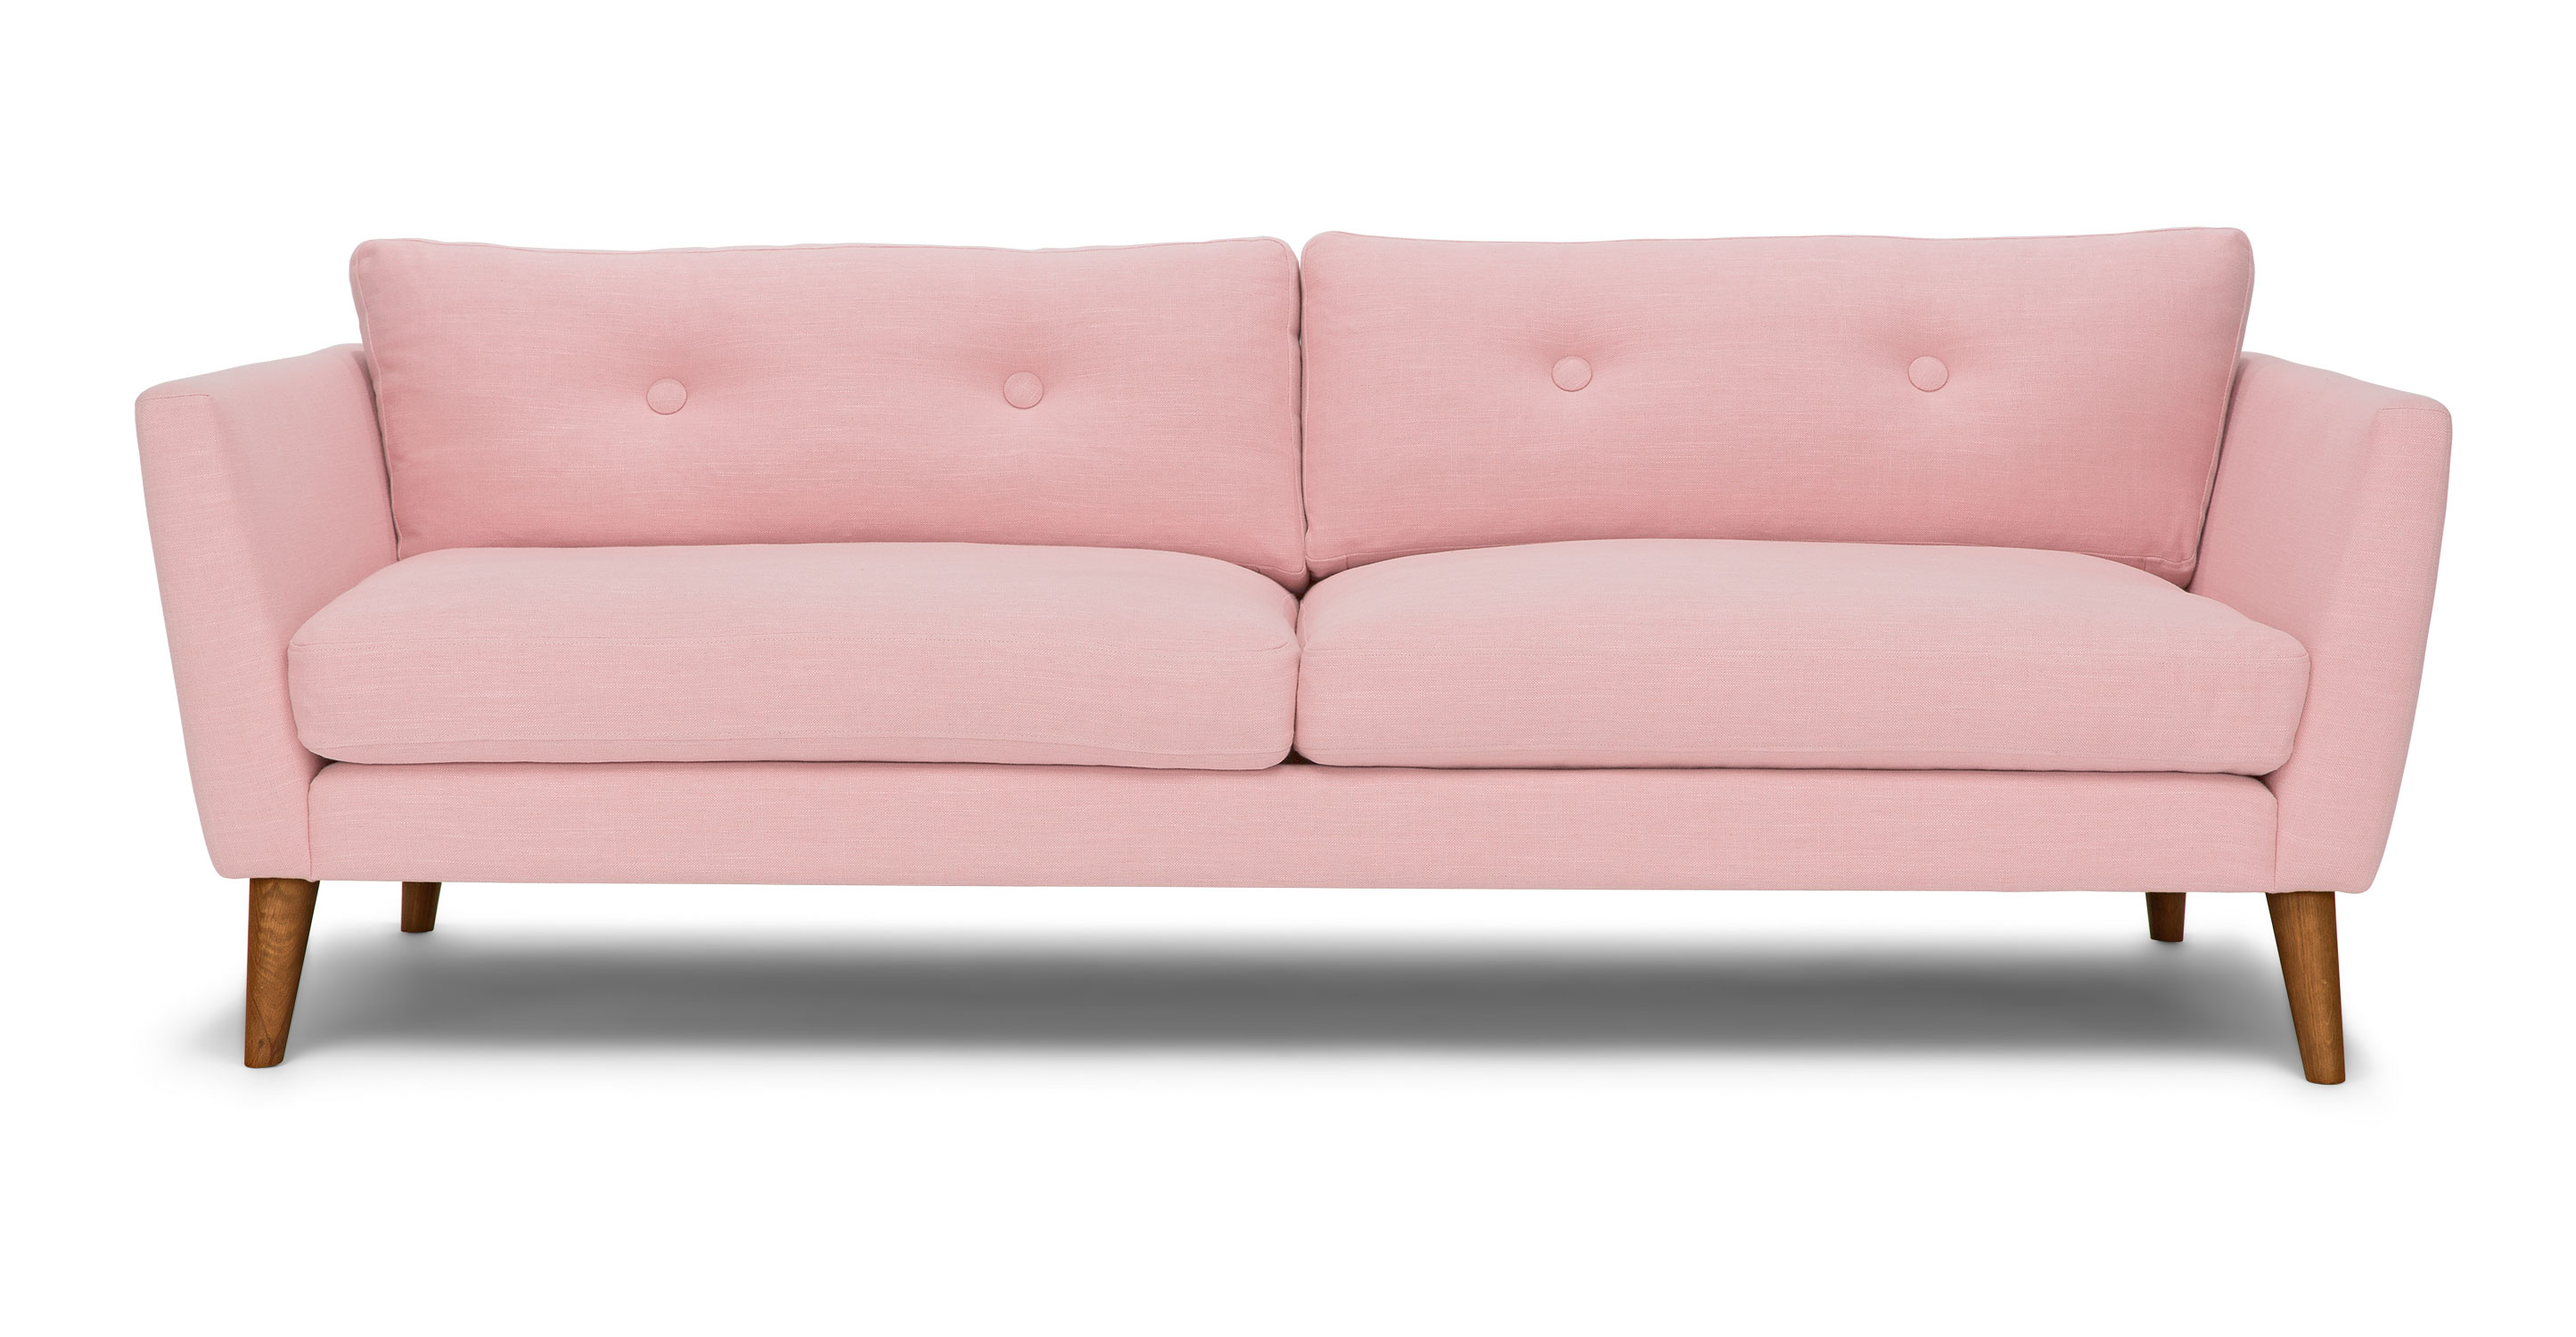 Stressless Sofa Rund Couch Chairs Lovingheartdesigns